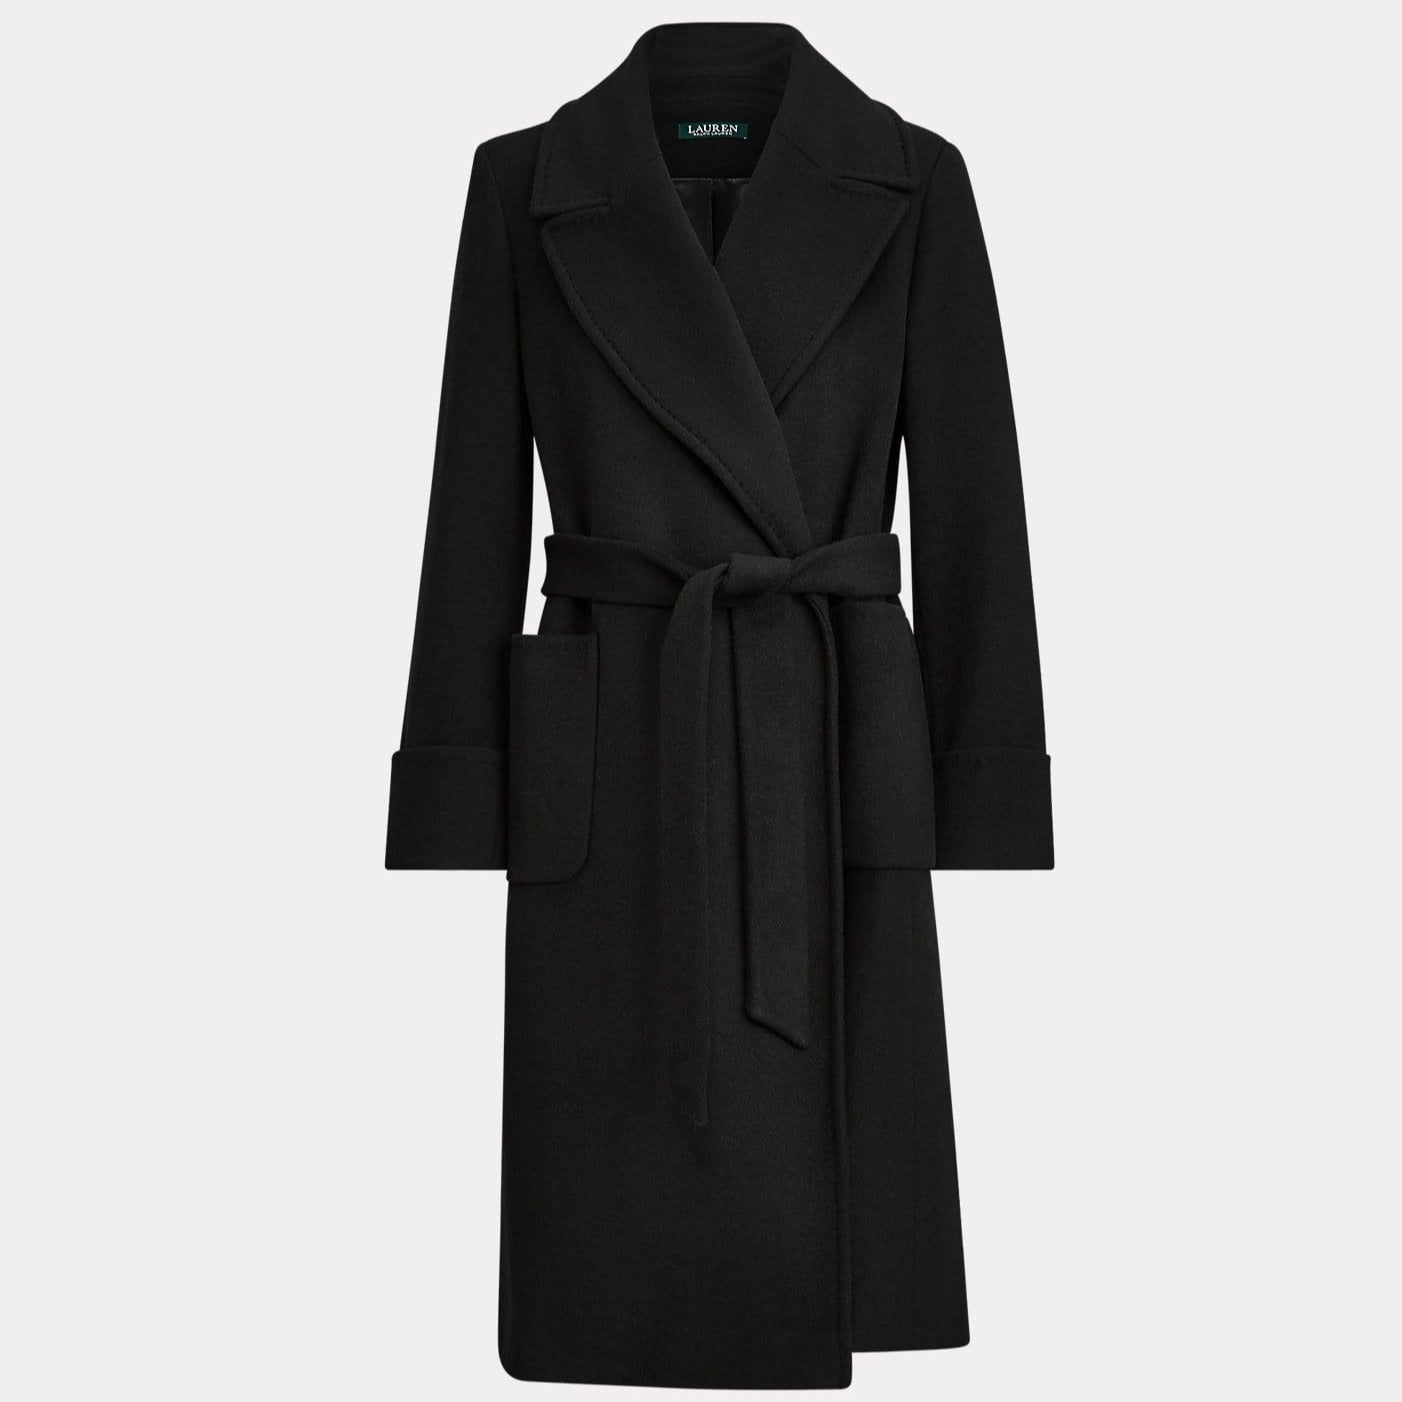 Lauren Ralph Lauren Black Wool-Blend Wrap Coat